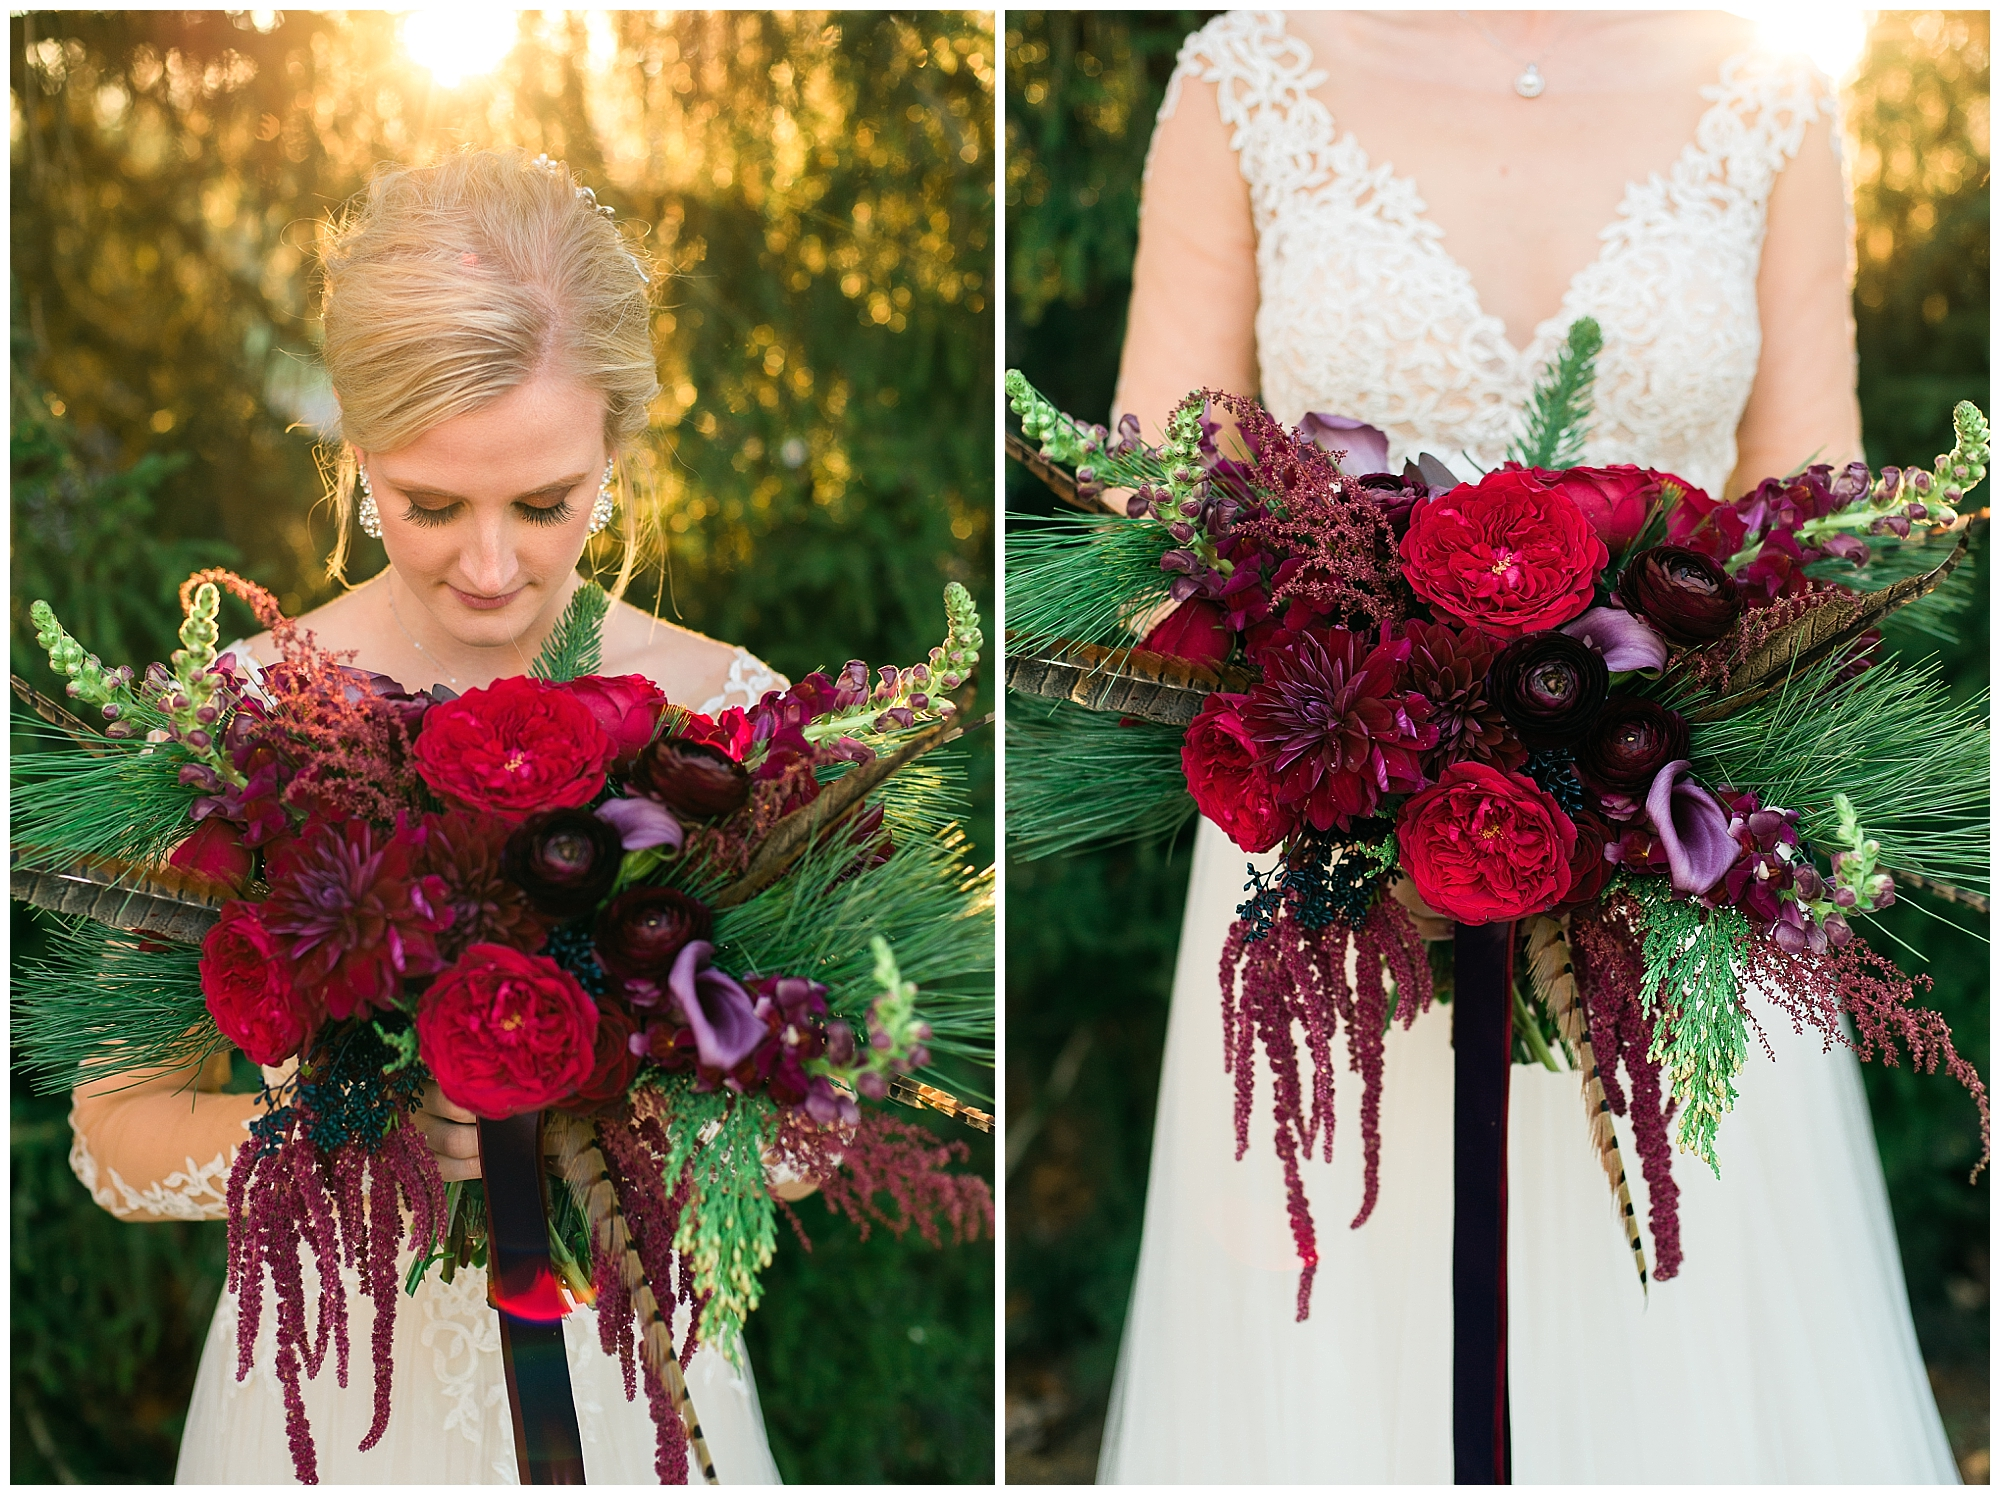 Brooke, your bouquet and arrangements were so luxurious! You're amazing!